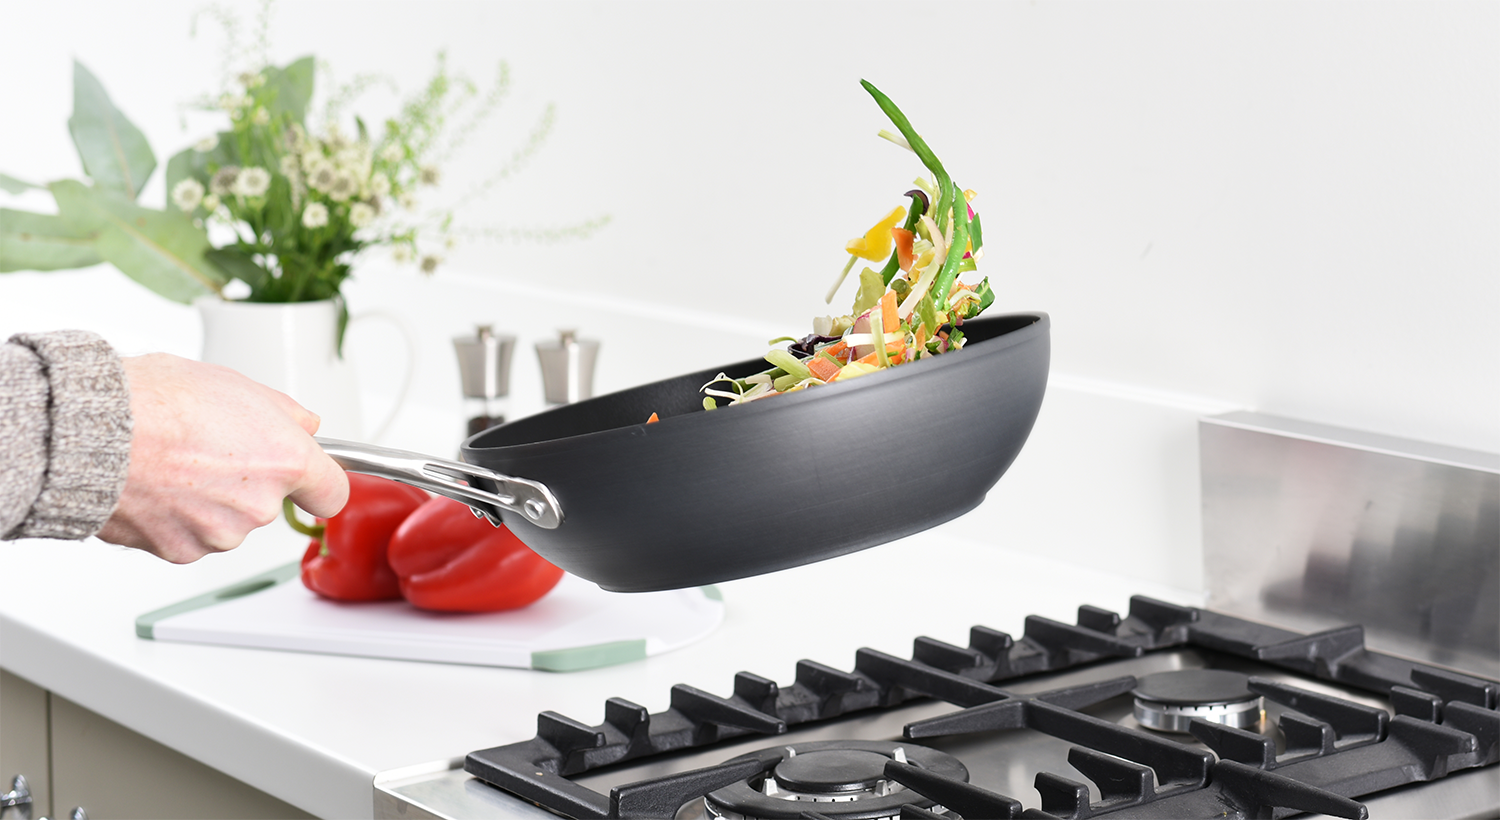 ProCook Uncoated Cookware VS Non-Stick Cookware